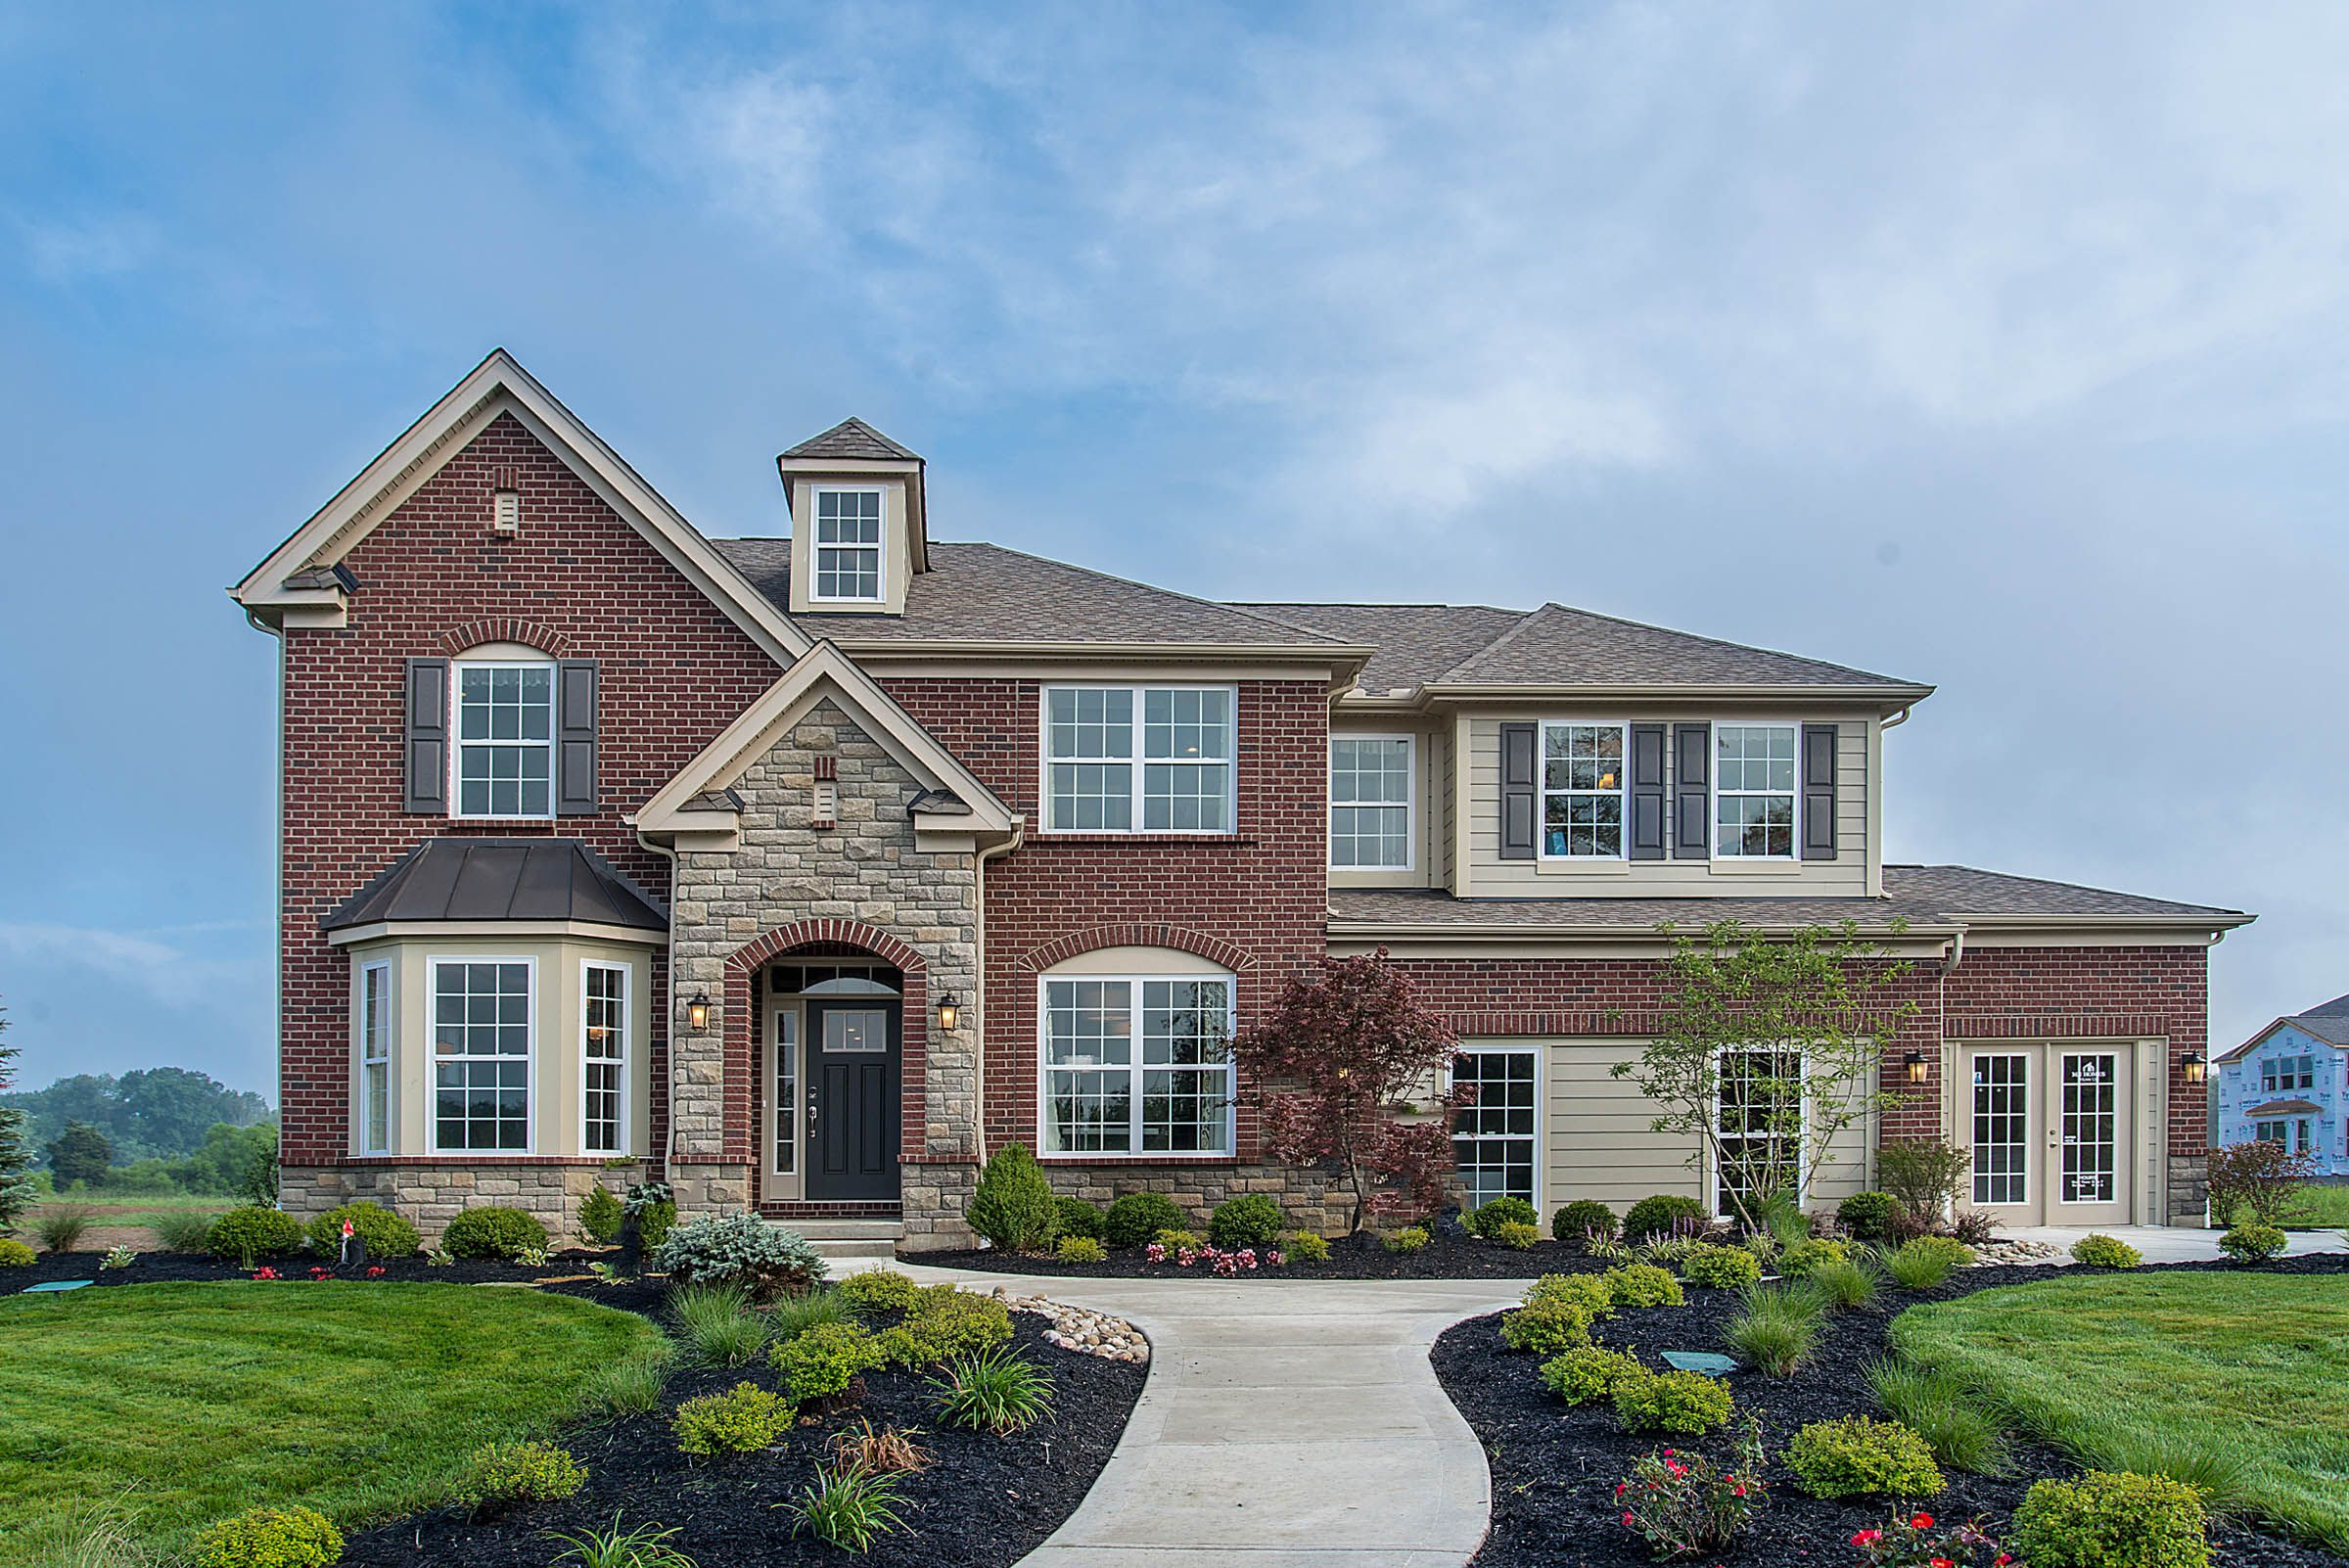 Visit the Parade Craze Tour of New Homes every weekend in